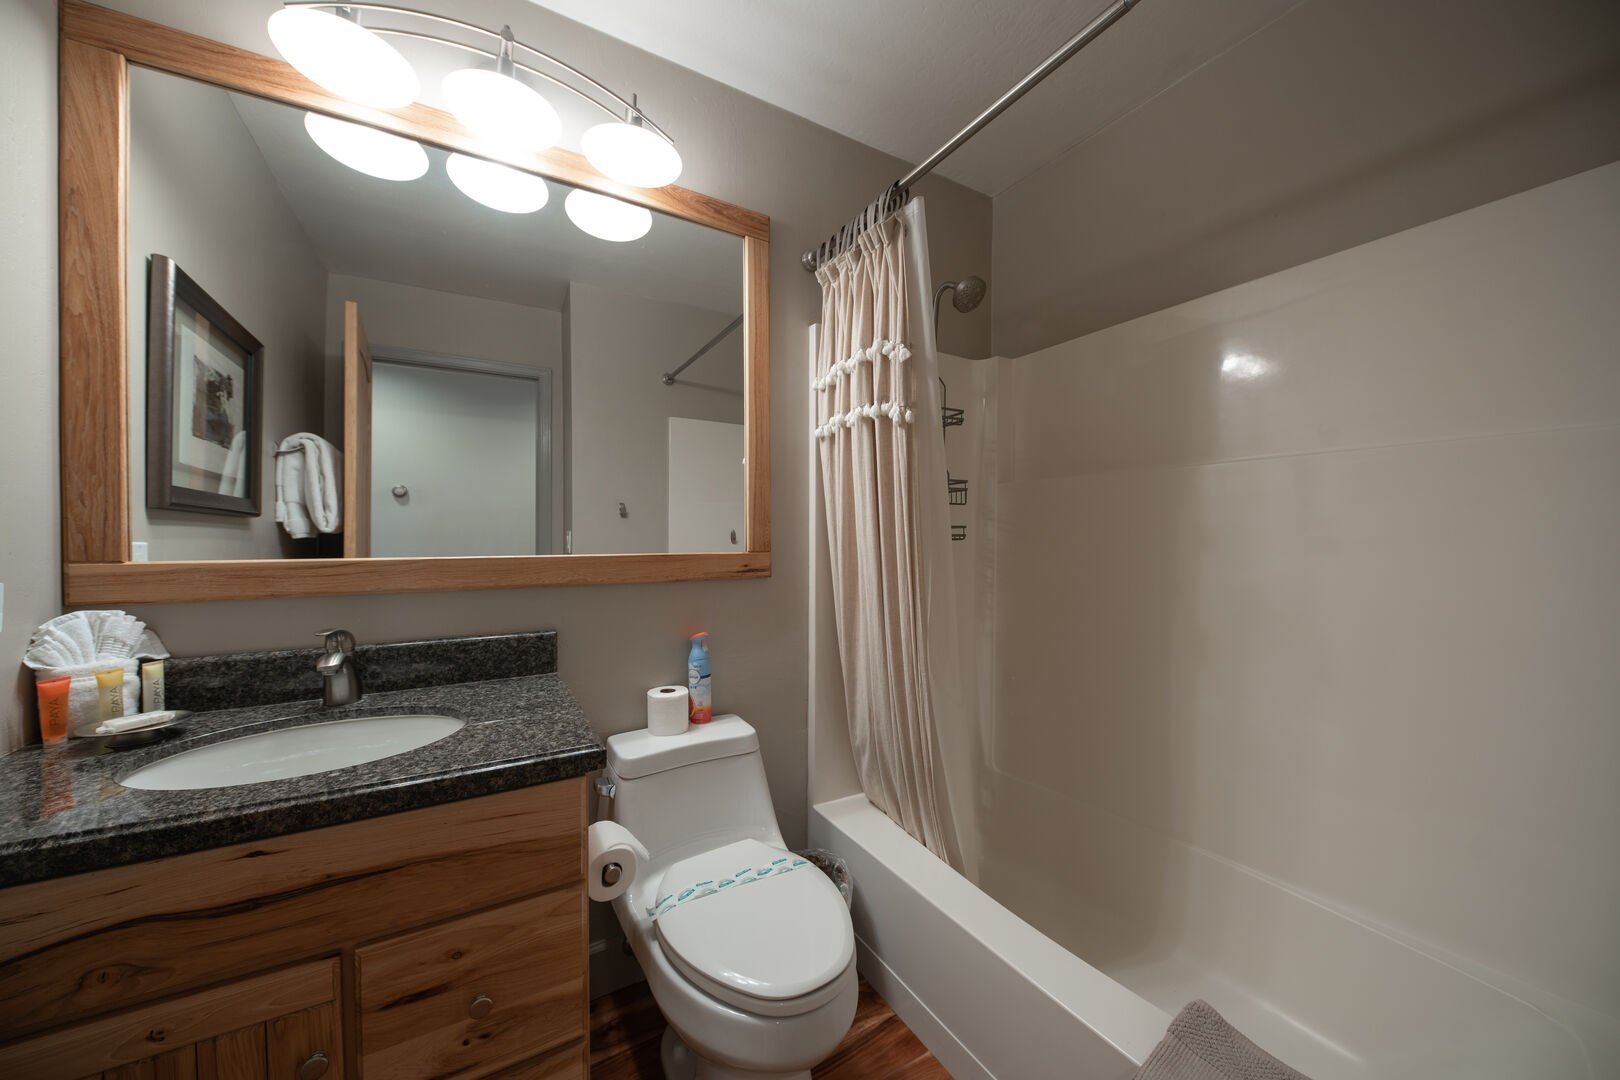 Bathroom with shower/tub combo and sink